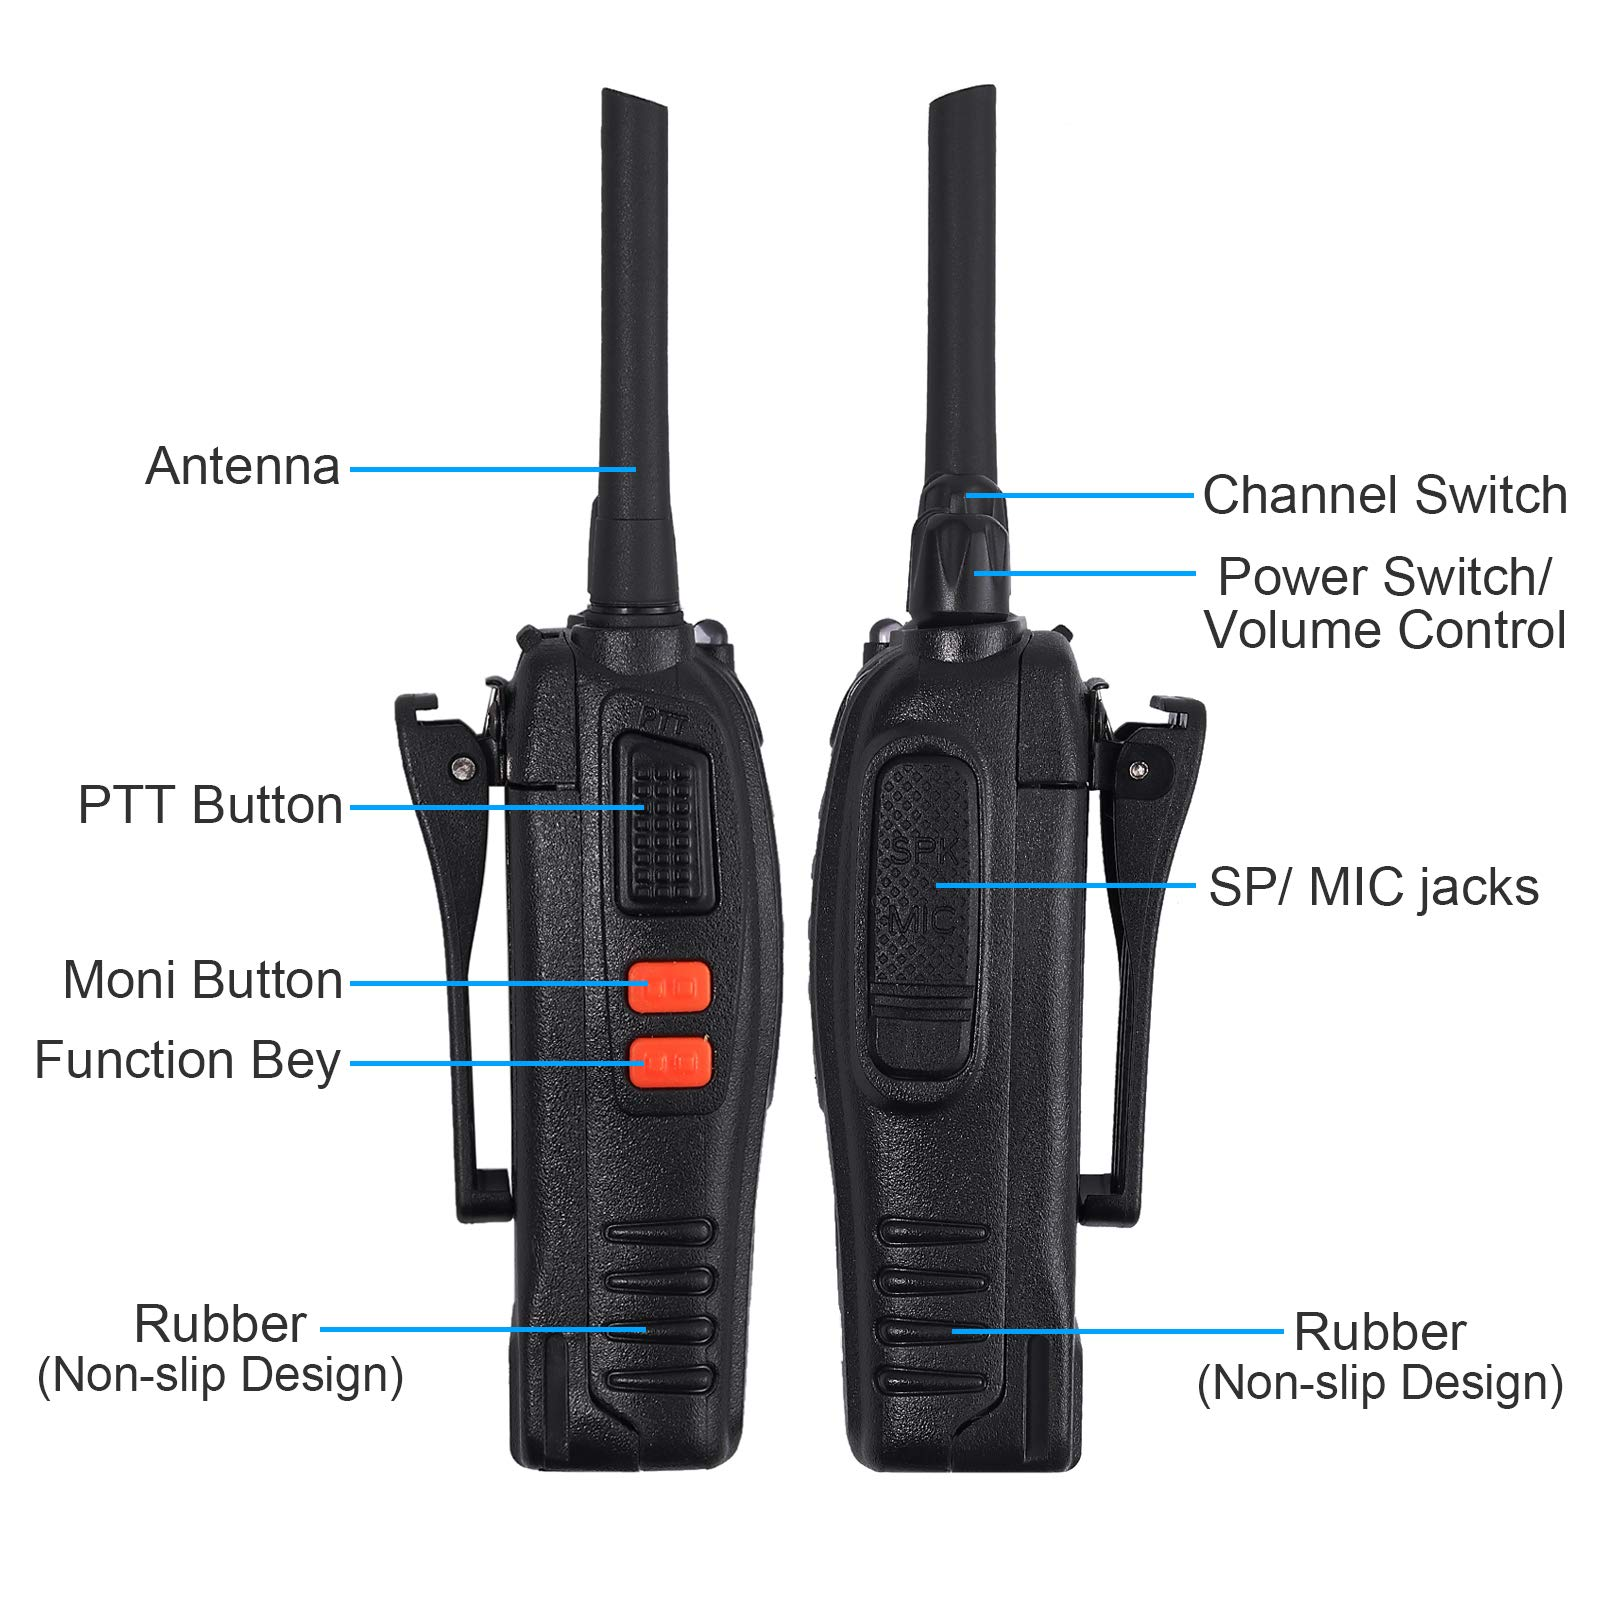 Neoteck 2 PCS Walkie Talkies Long Range 16 Channel 2 Way Radio FRS462MHz Walky Talky Rechargeable with USB Charger Original Earpieces for Field Survival Biking Hiking by Neoteck (Image #3)